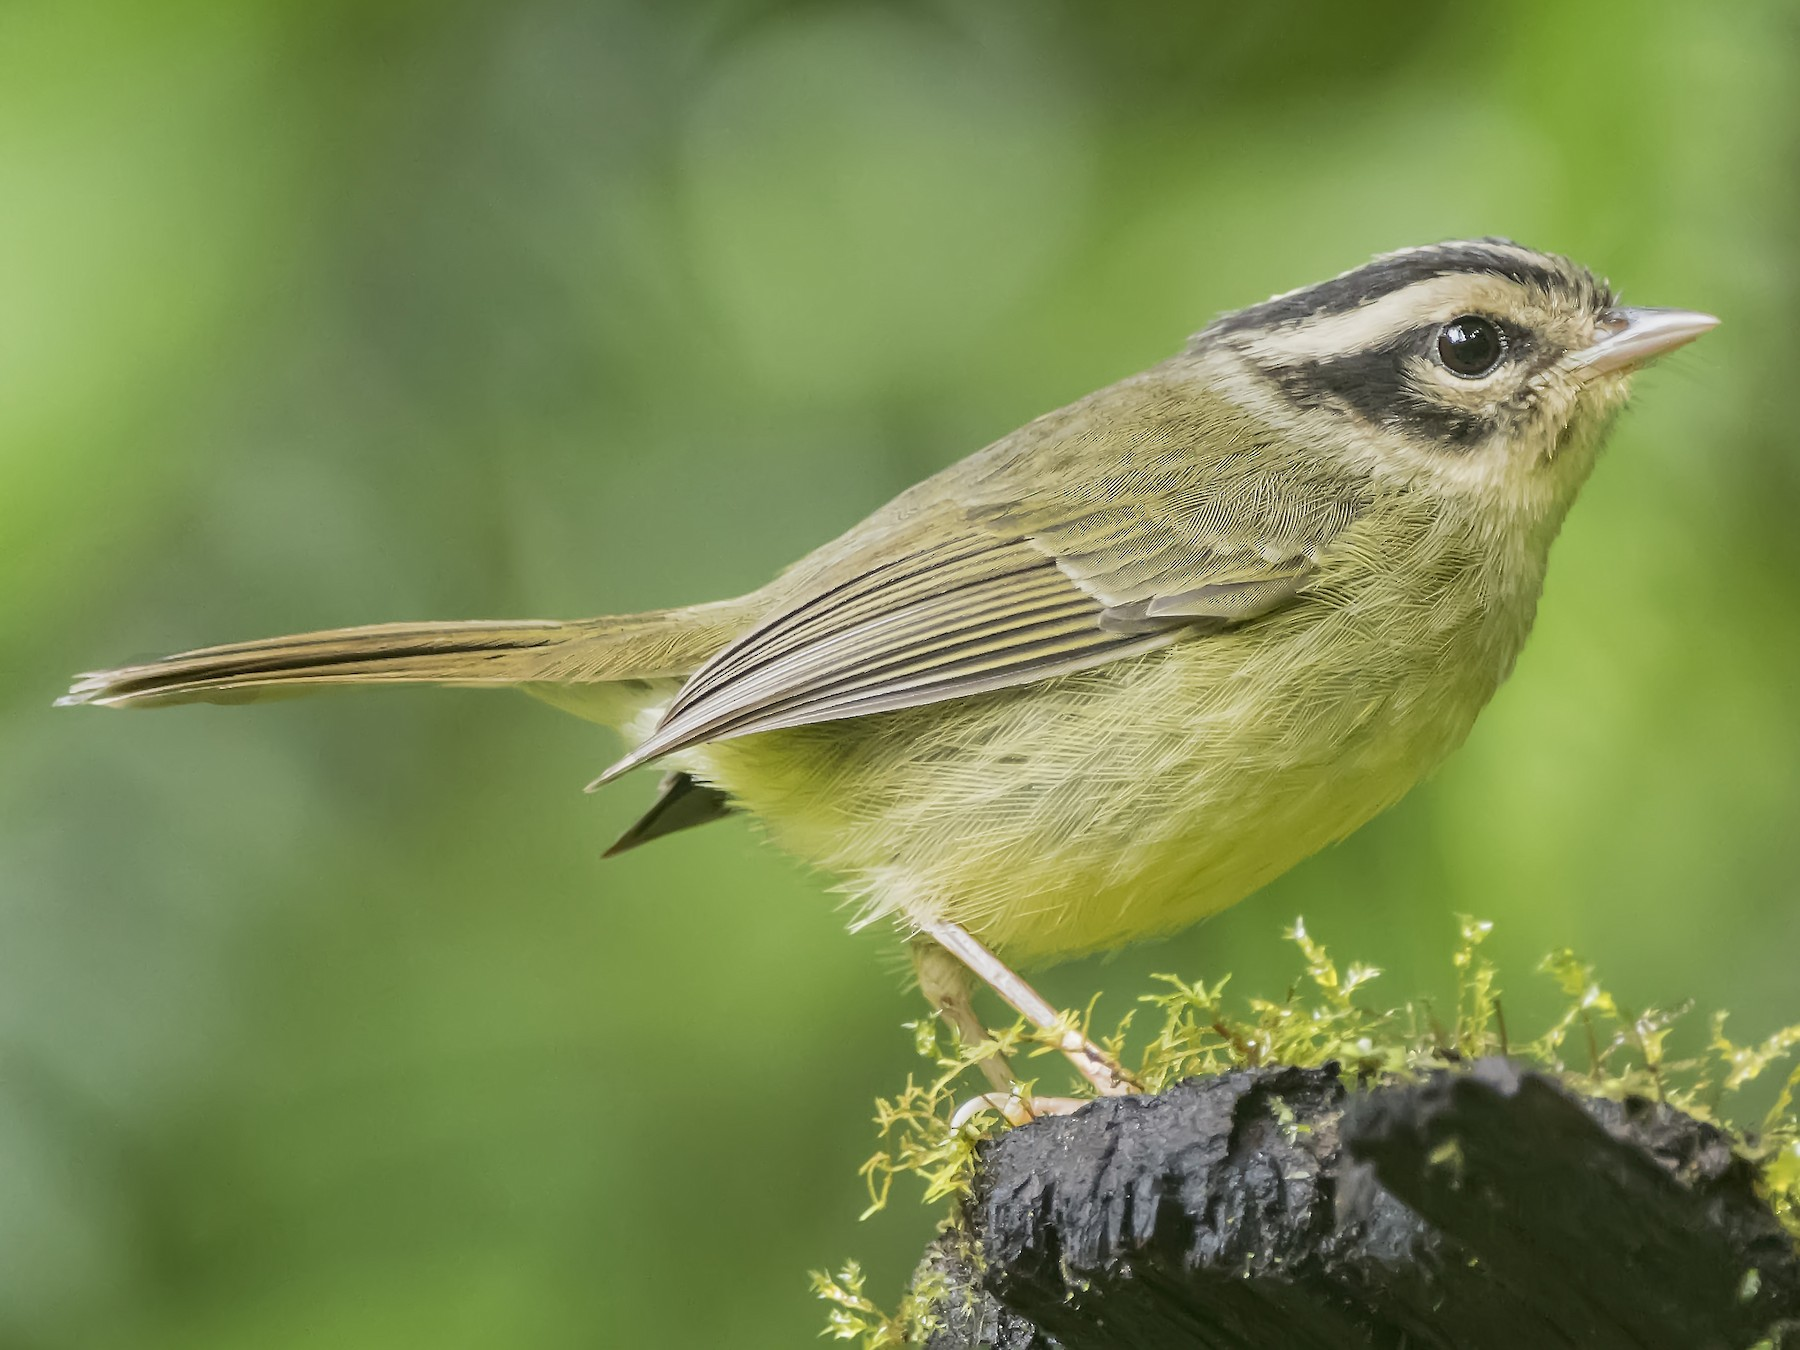 Costa Rican Warbler - Leandro Arias